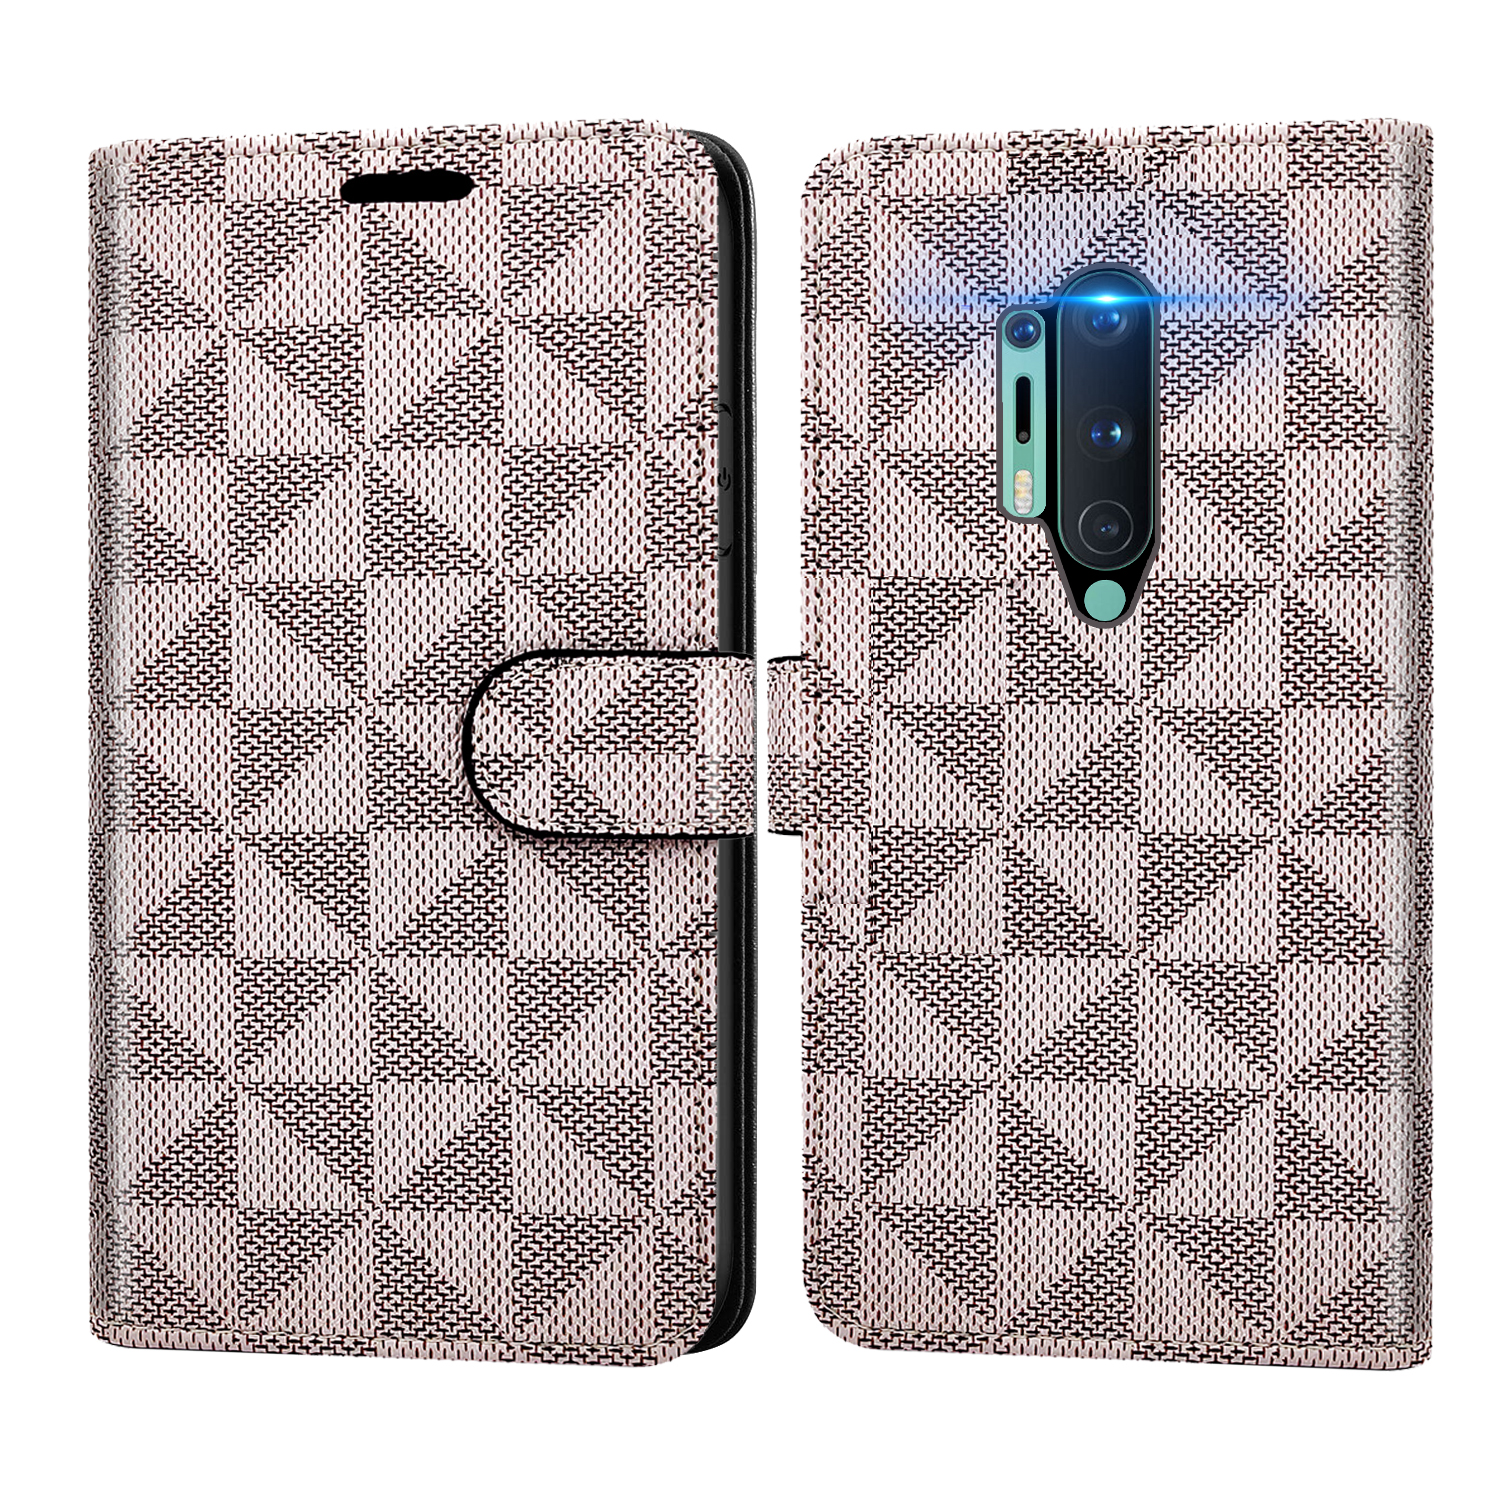 newest collection f55e1 6bb3f Details about For Motorola Moto G5 Plus / Moto X 2017 Holster Case  Kickstand Hybrid Cover Blue